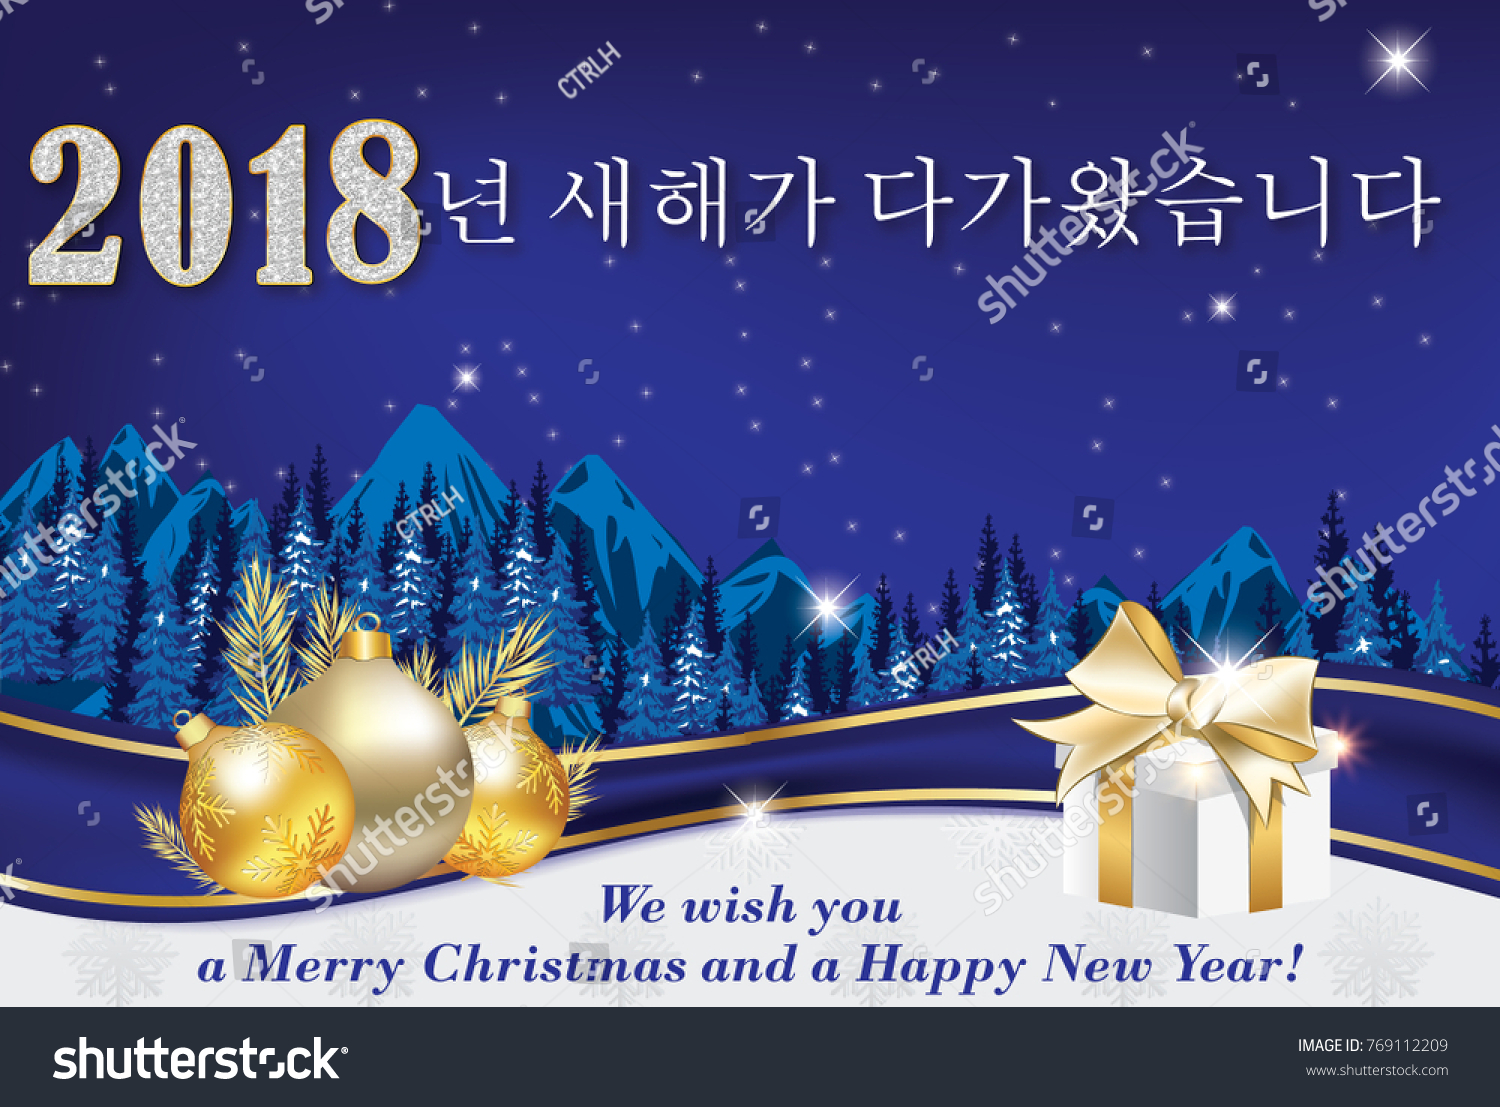 2018 Korean Business Christmas New Year Stock Illustration ...